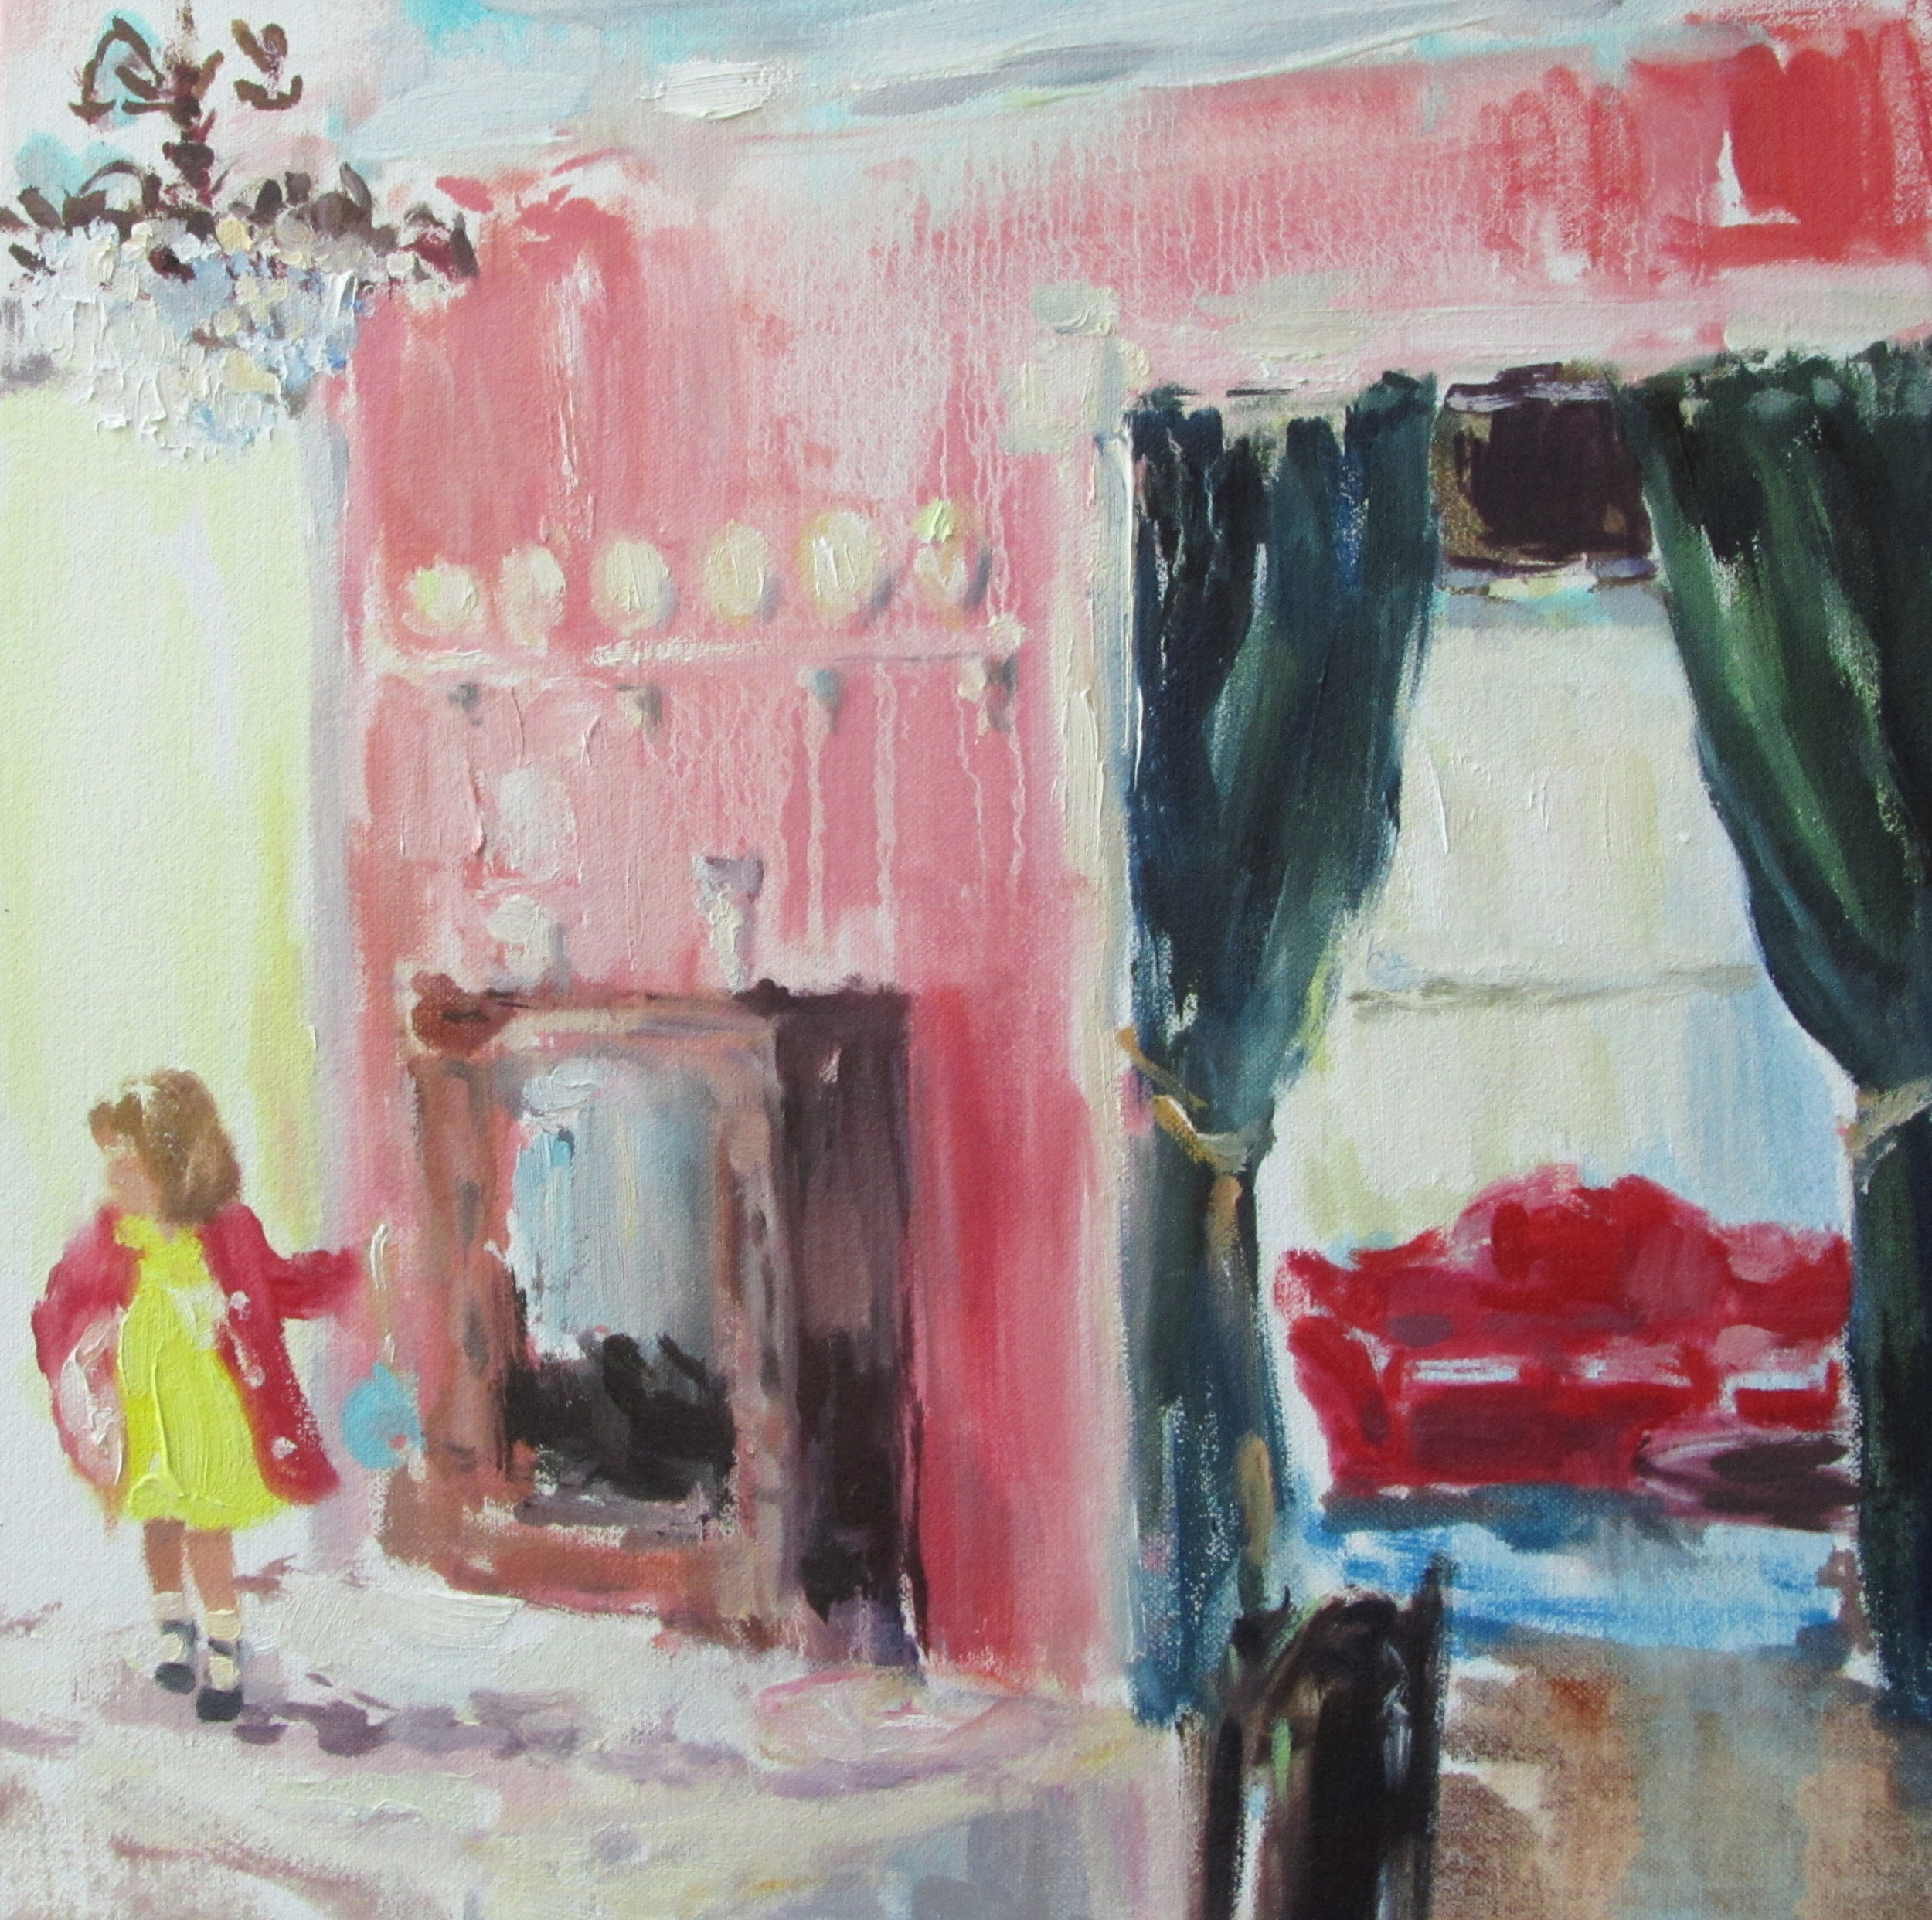 Museum (taking a chance or two) oil on canvas 10 x 10 in. 2012